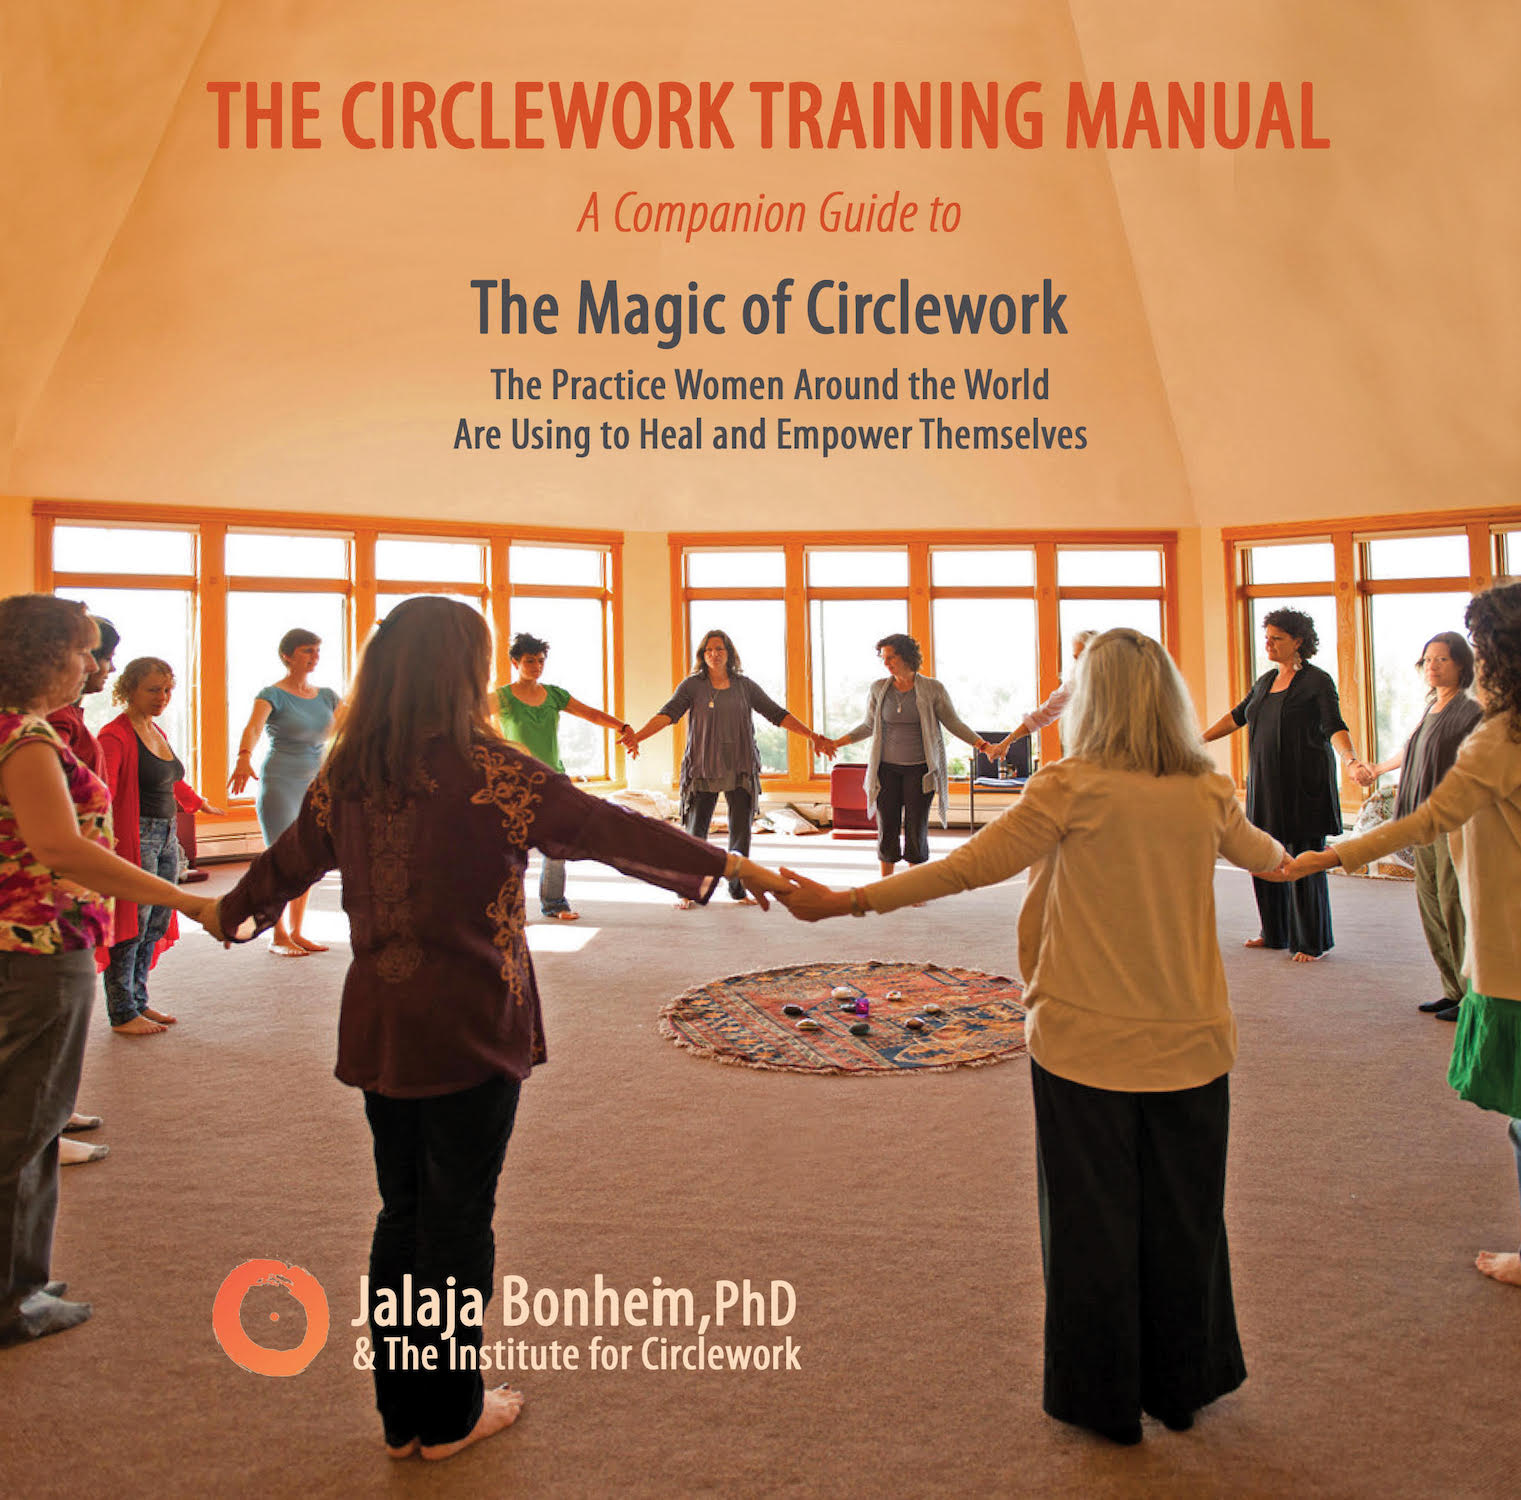 """""""The Circlework Training Manual"""" cover image"""